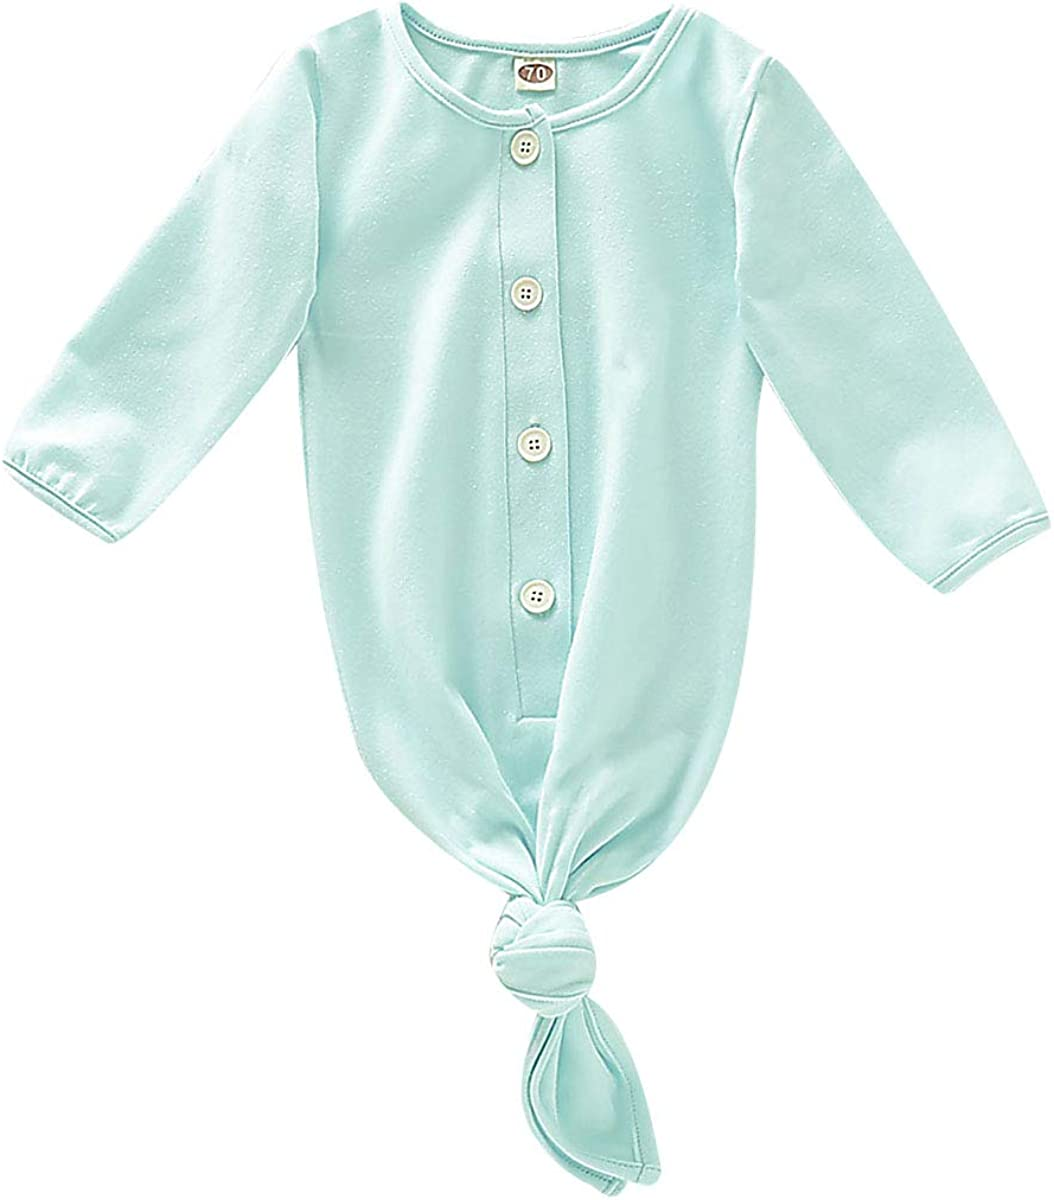 YOUNGER TREE Newborn Baby Sleeper Gowns Unisex Striped Cotton Nightgowns with Cap Long Knotted Sleepwear Sleeping Bag with Mitten Cuffs